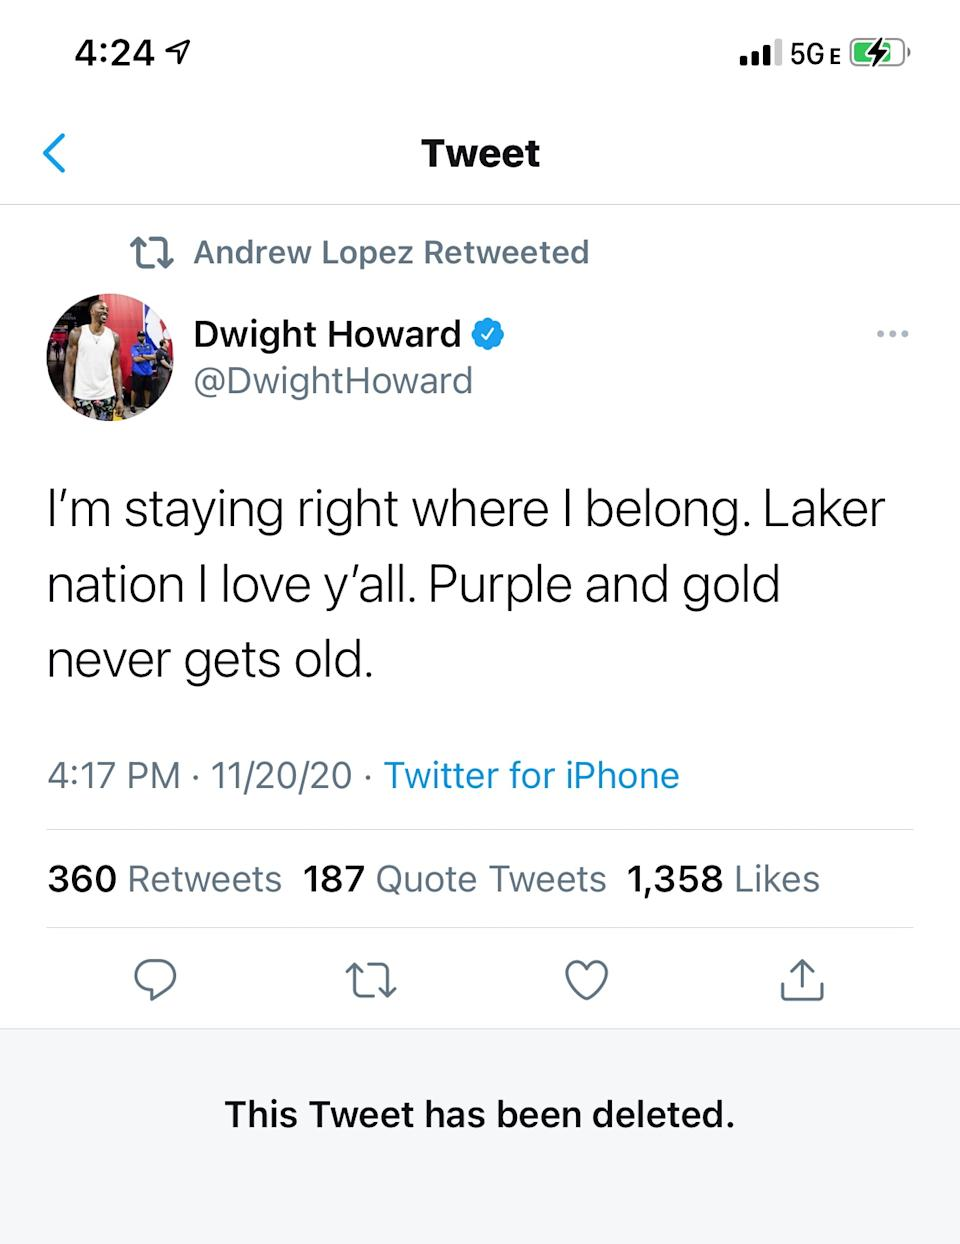 Dwight Howard's tweet from Friday evening announcing his return to the Los Angeles Lakers.